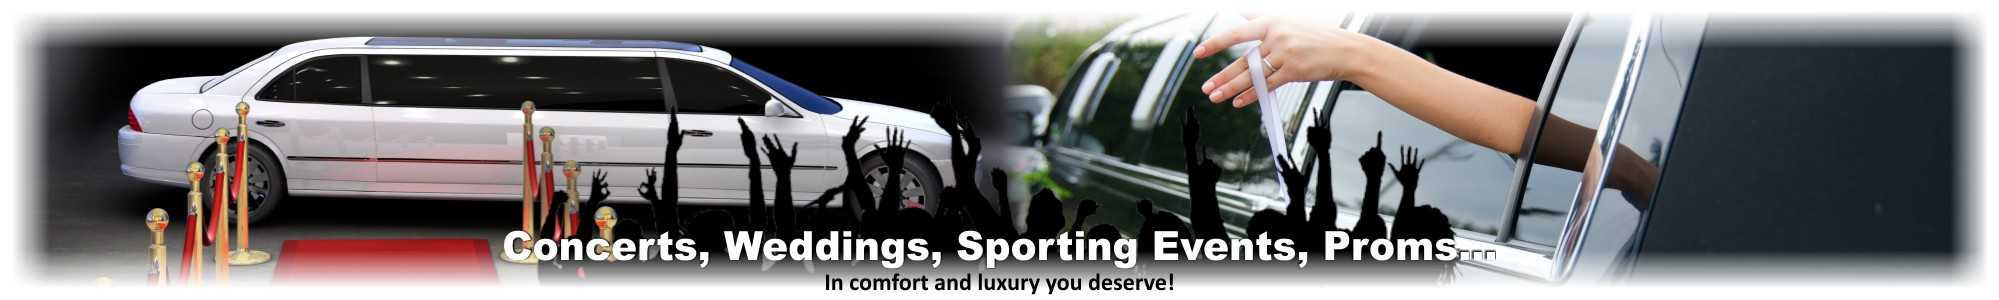 Concerts, Sporting Events, Weddings, Proms Limousine Service in Illinois by Affordable Limo Inc